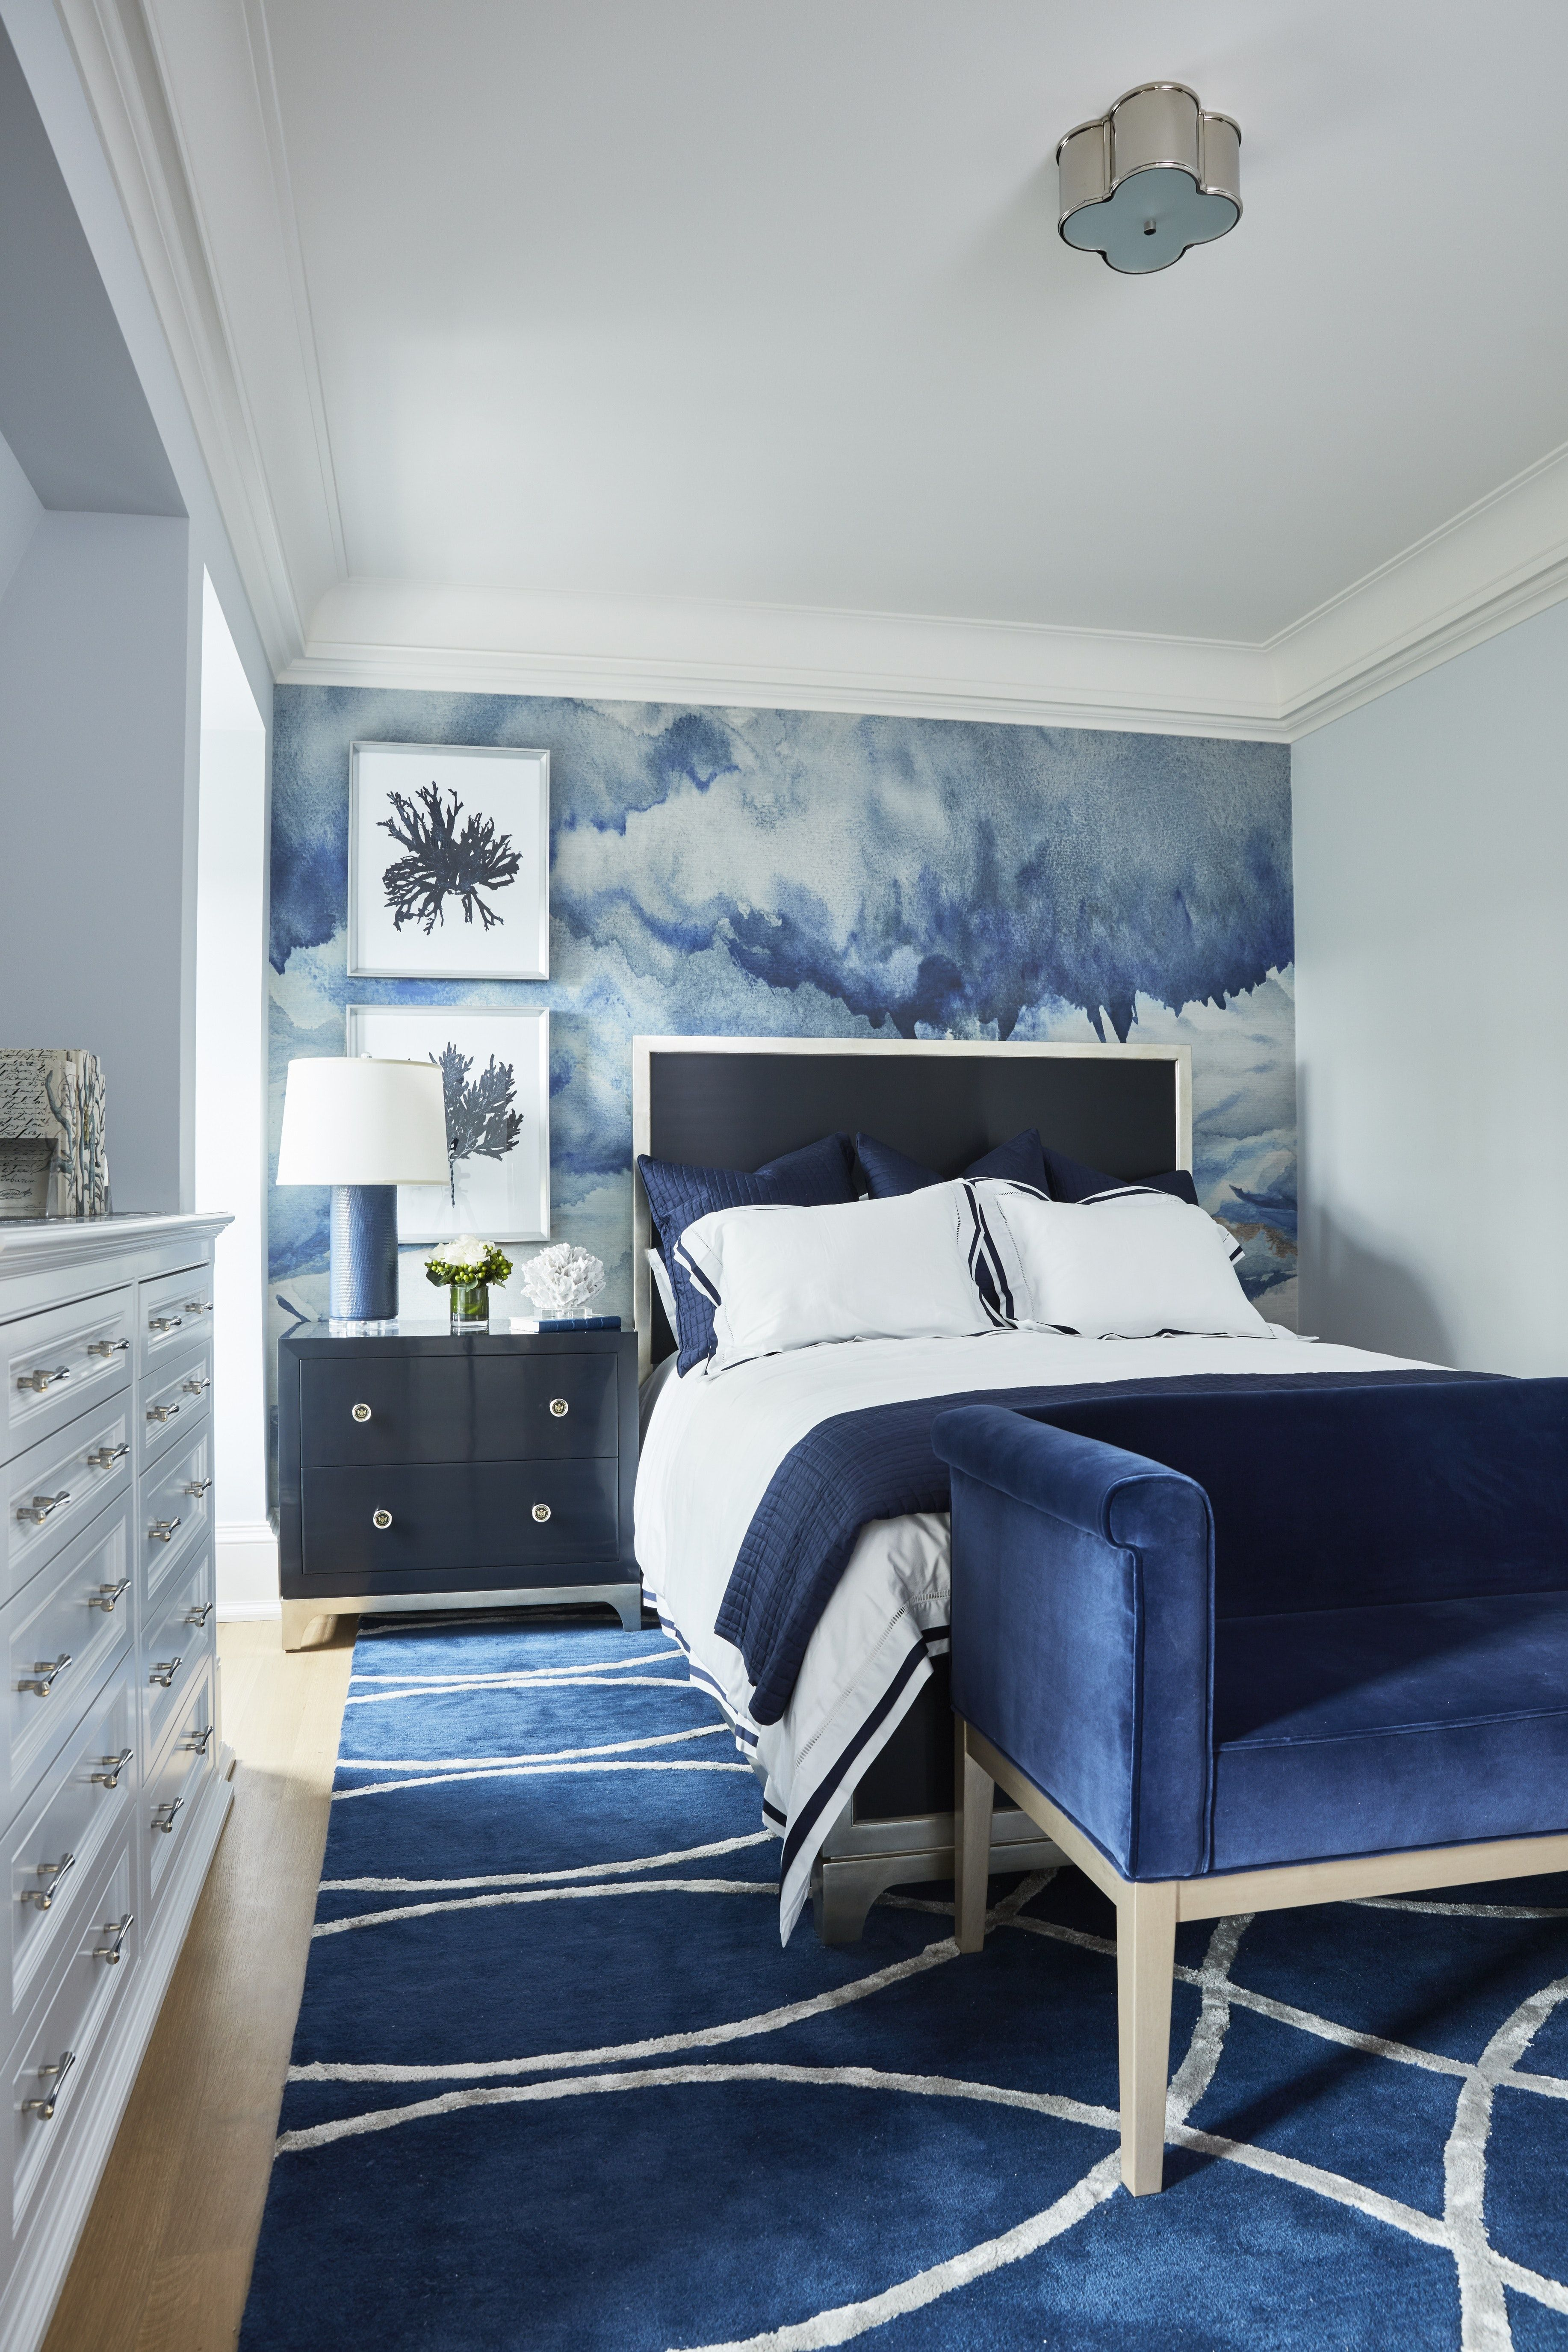 Navy Blue Bedroom With Accent Mural Wallpaper Blue Bedroom Wallpaper Design For Bedroom Master Bedrooms Decor